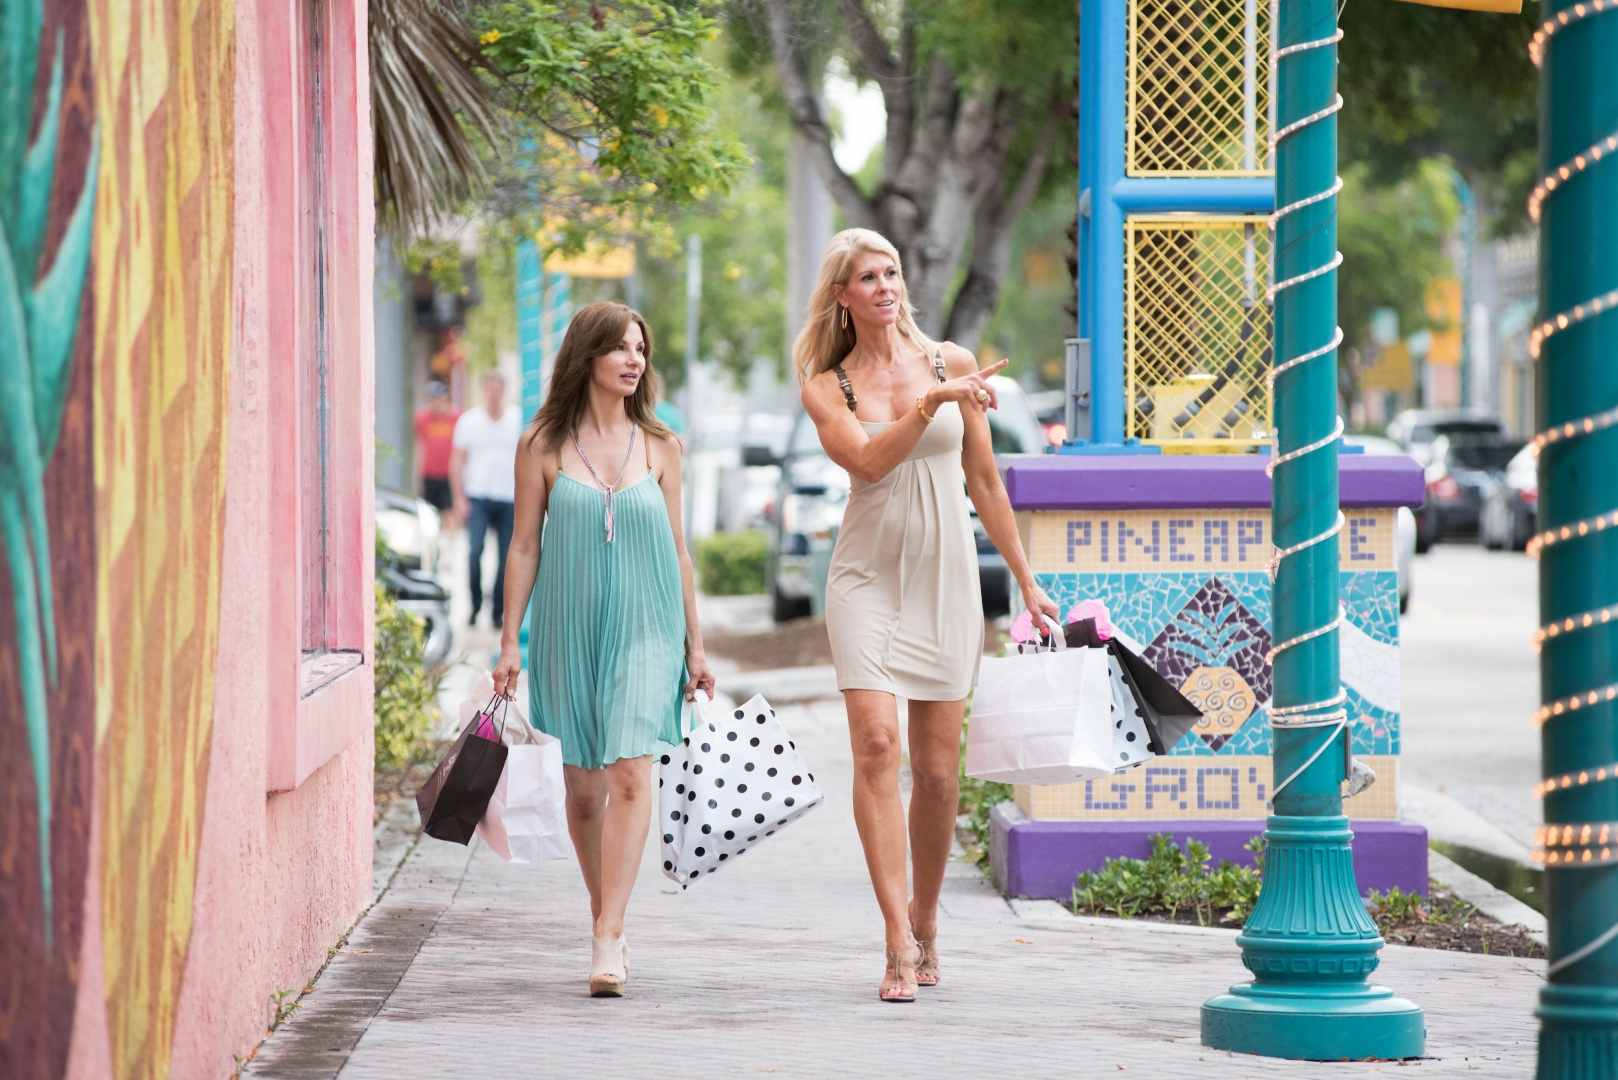 Pineapple Grove Arts District Downtown Delray Beach